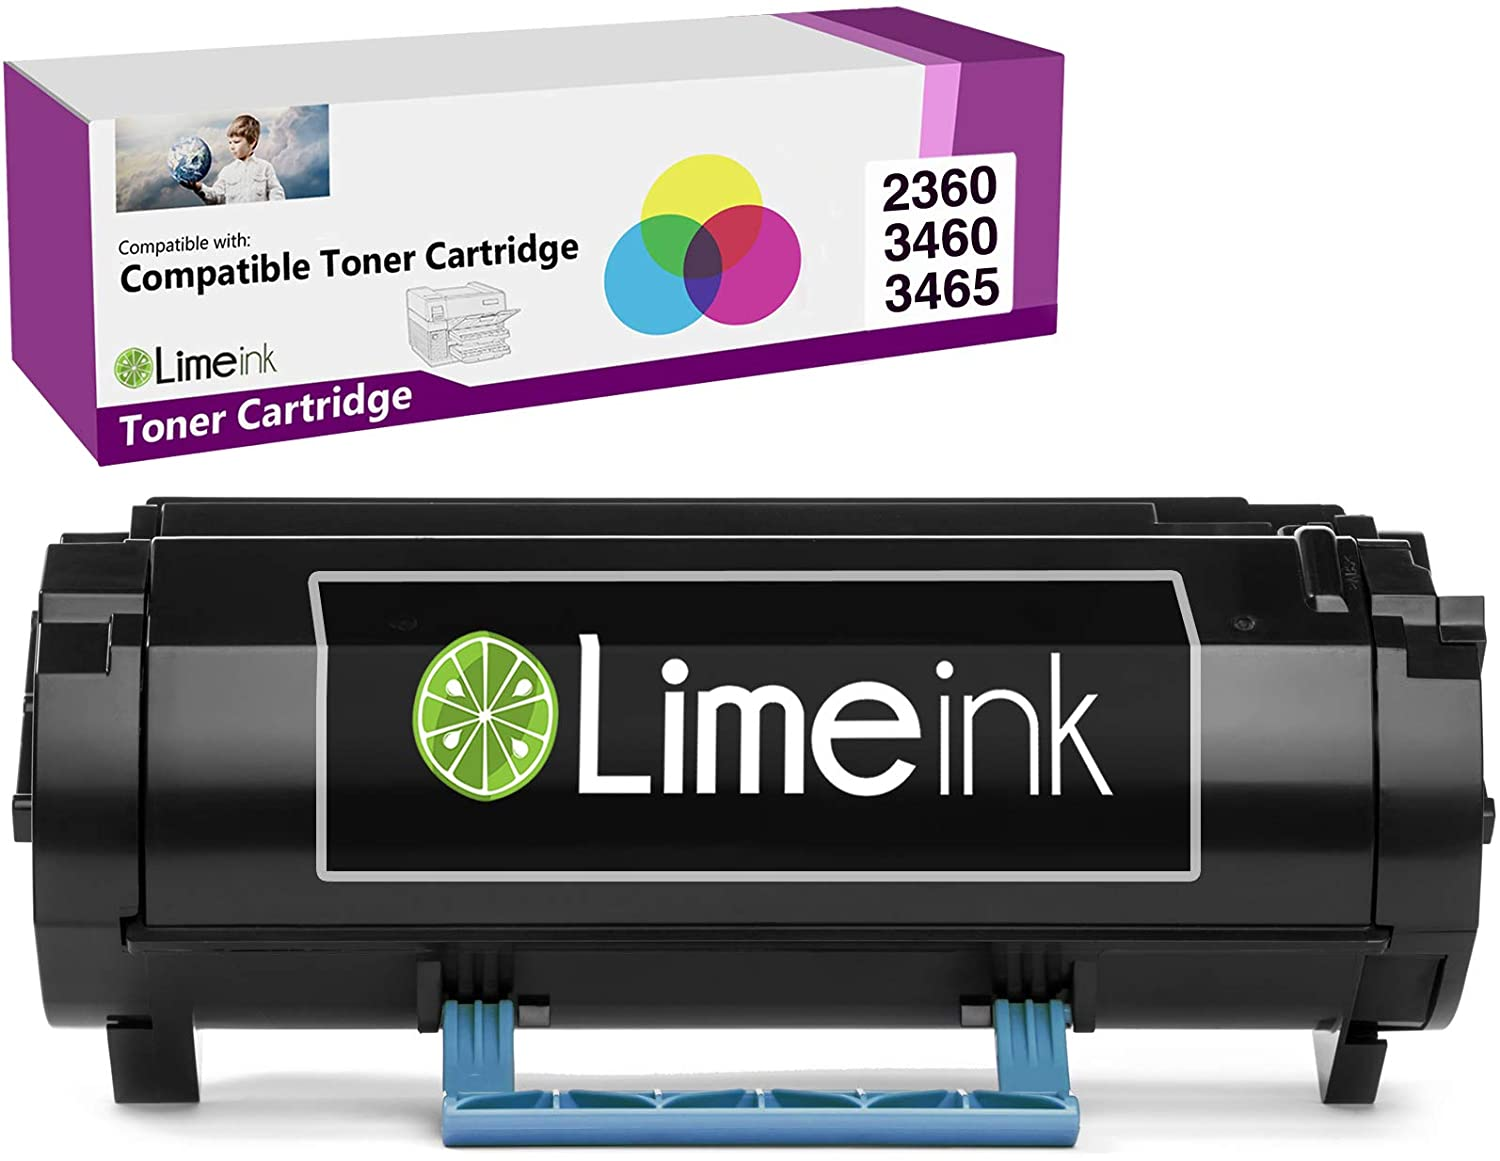 Limeink Black Remanufactured M11XH 331-9805 High Yield Laser Toner Cartridge Compatible for Dell B2360 B3460 B3465 B2360d B2360dn B3460dn B3465dn B3465dnf 2360dn 2360d 3460dn 2360 3460 3465 Printers